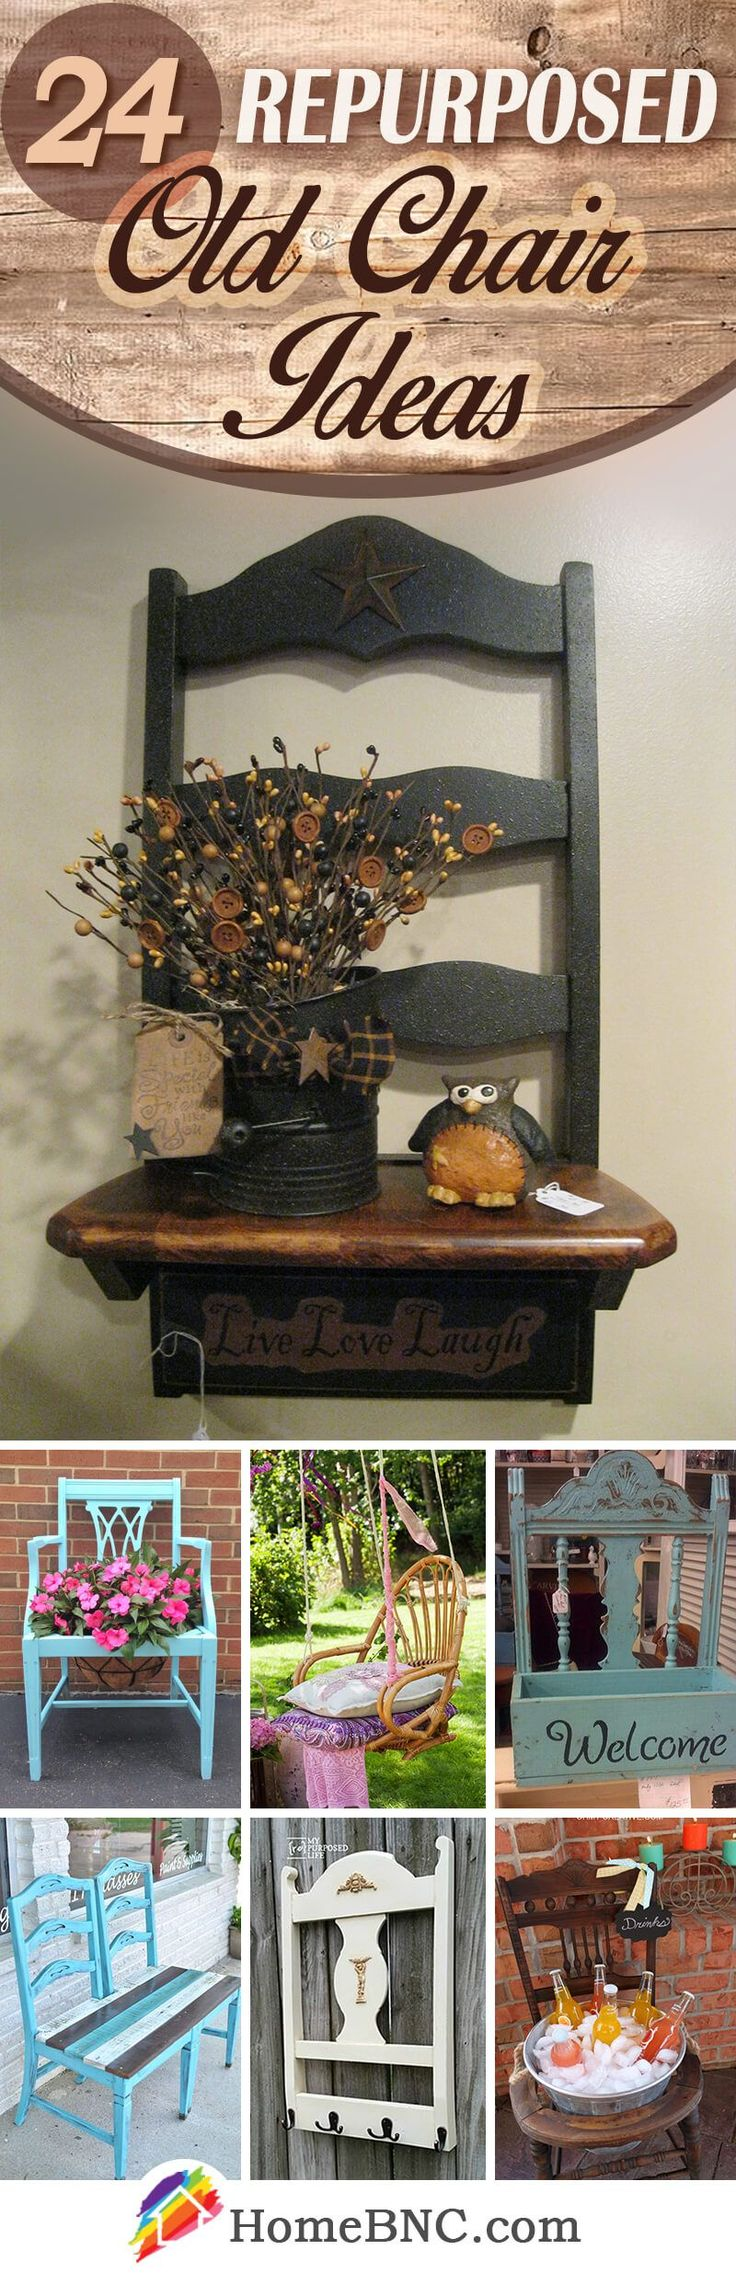 Repurposed Old Chair Decor Ideas